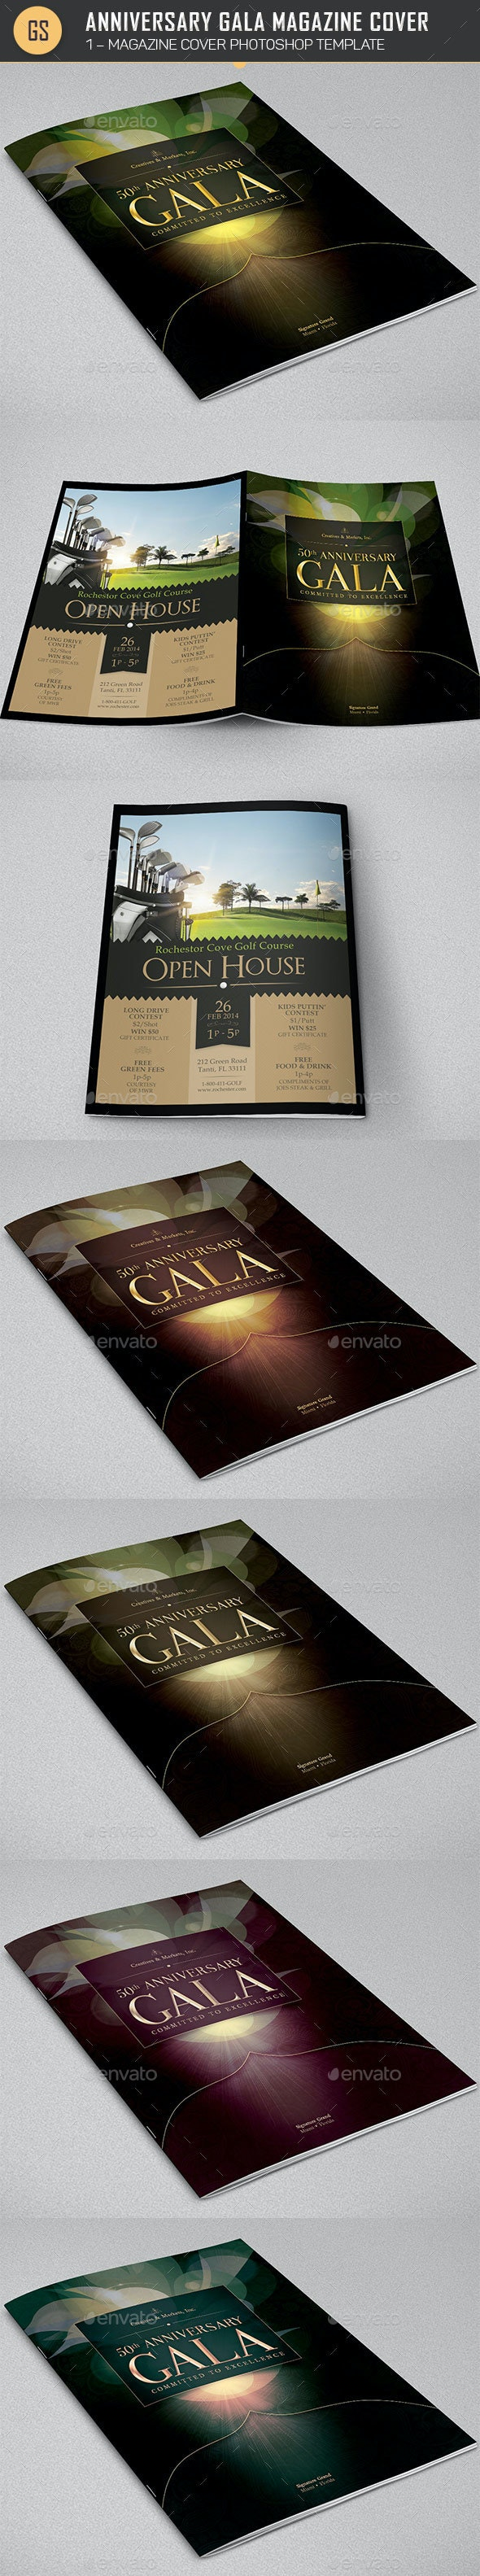 Anniversary Gala Magazine Cover Template - Magazines Print Templates